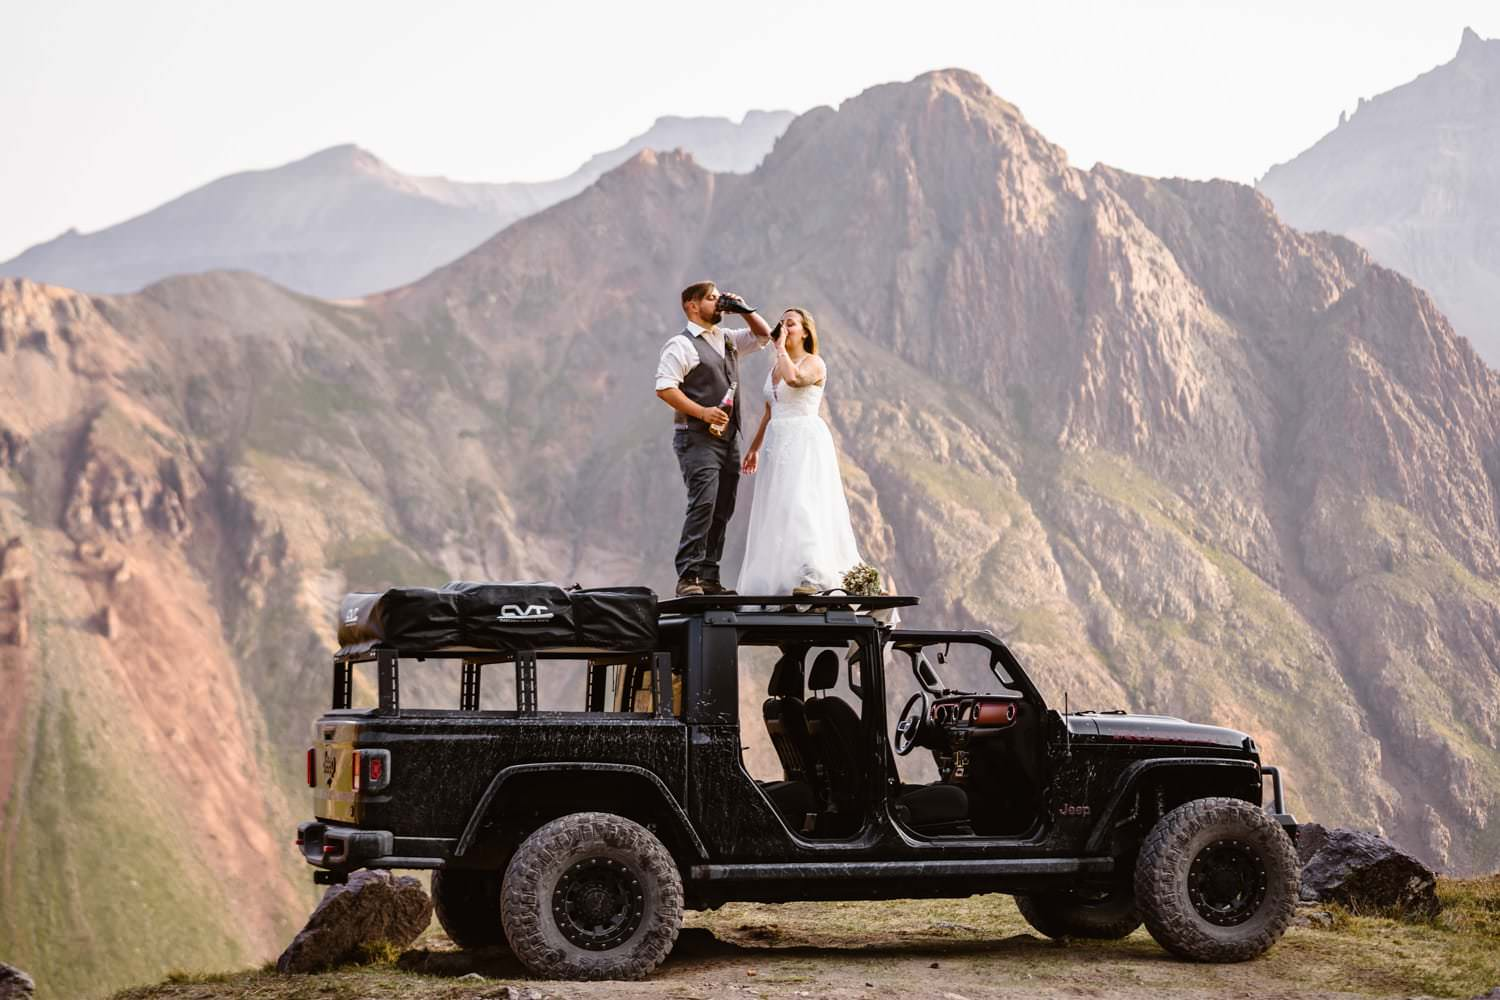 Top 10 Reasons Why You Should Elope Environmentally Friendly